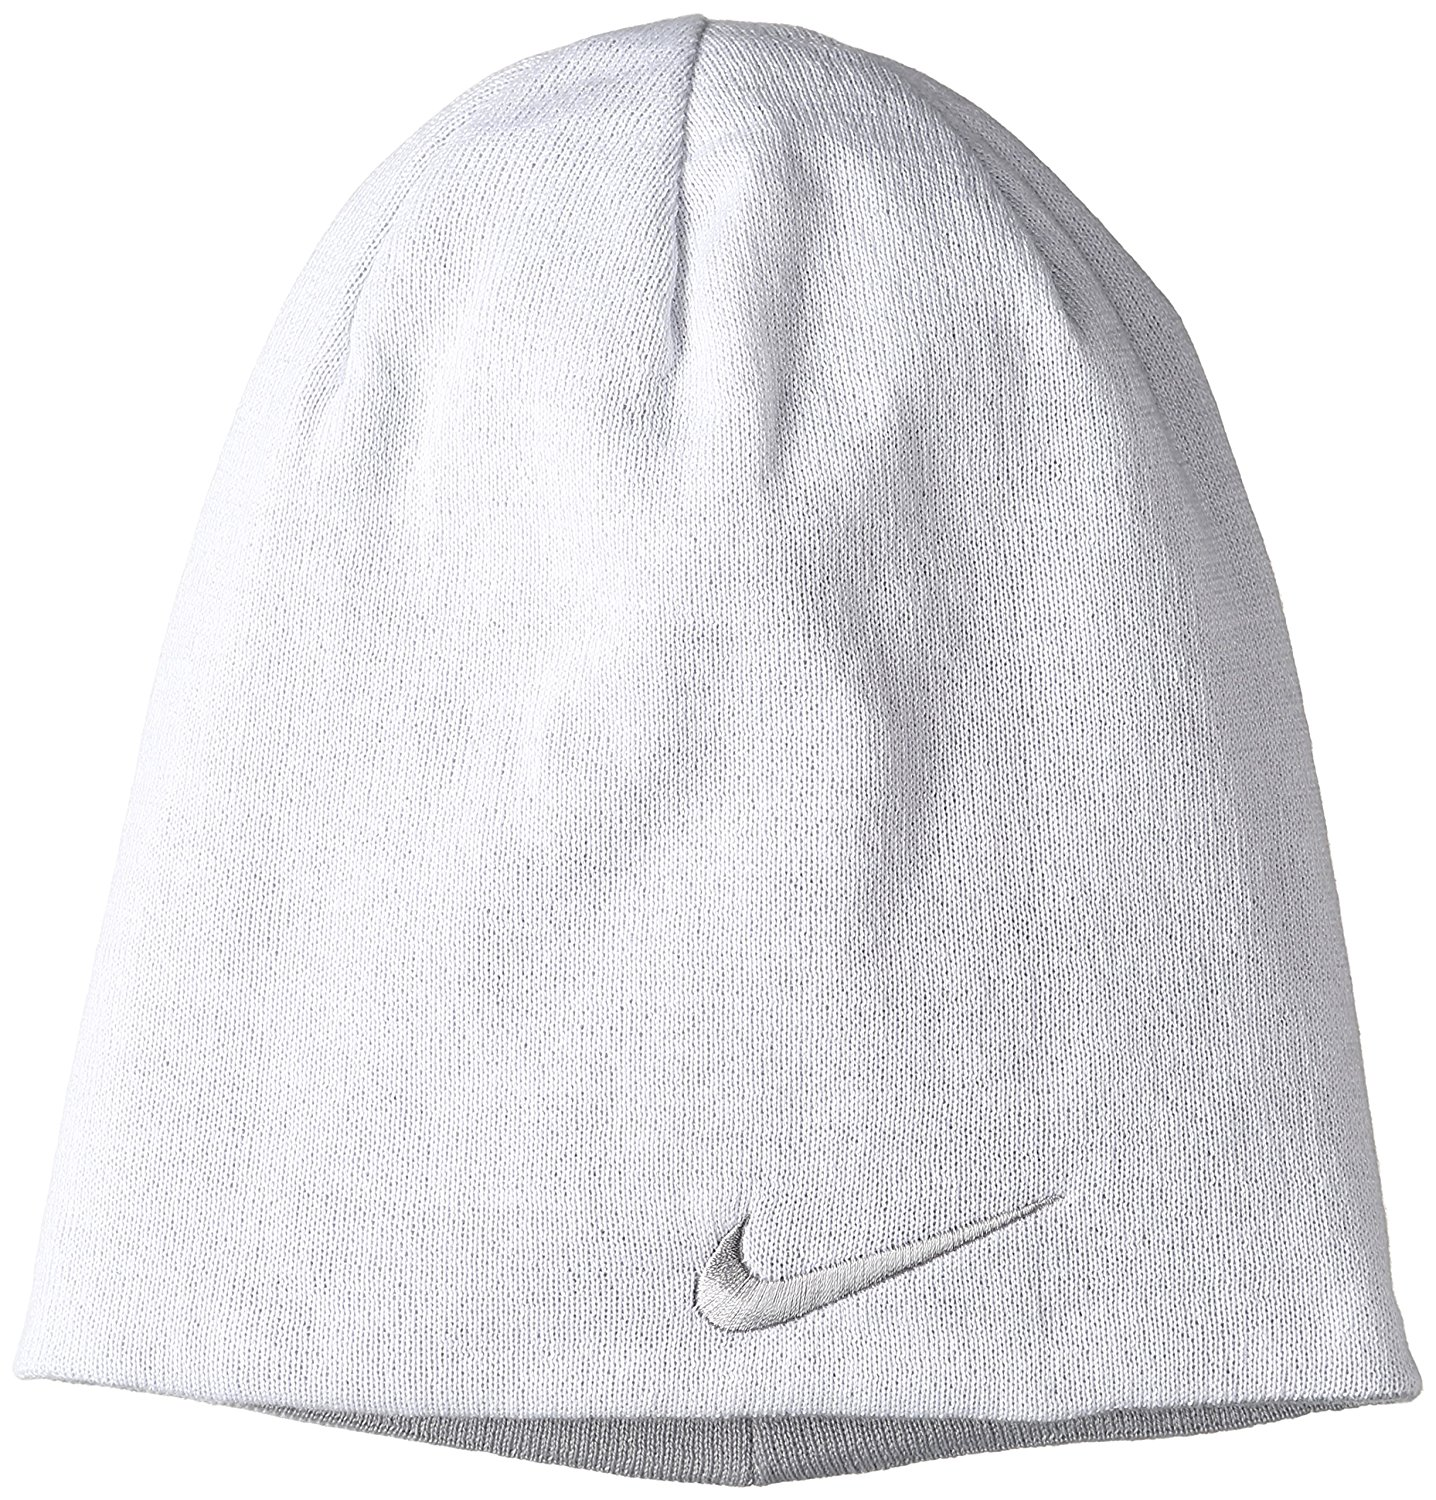 Nike Mens Reversible Knit Golf Winter Beanie Caps 565fca6e846